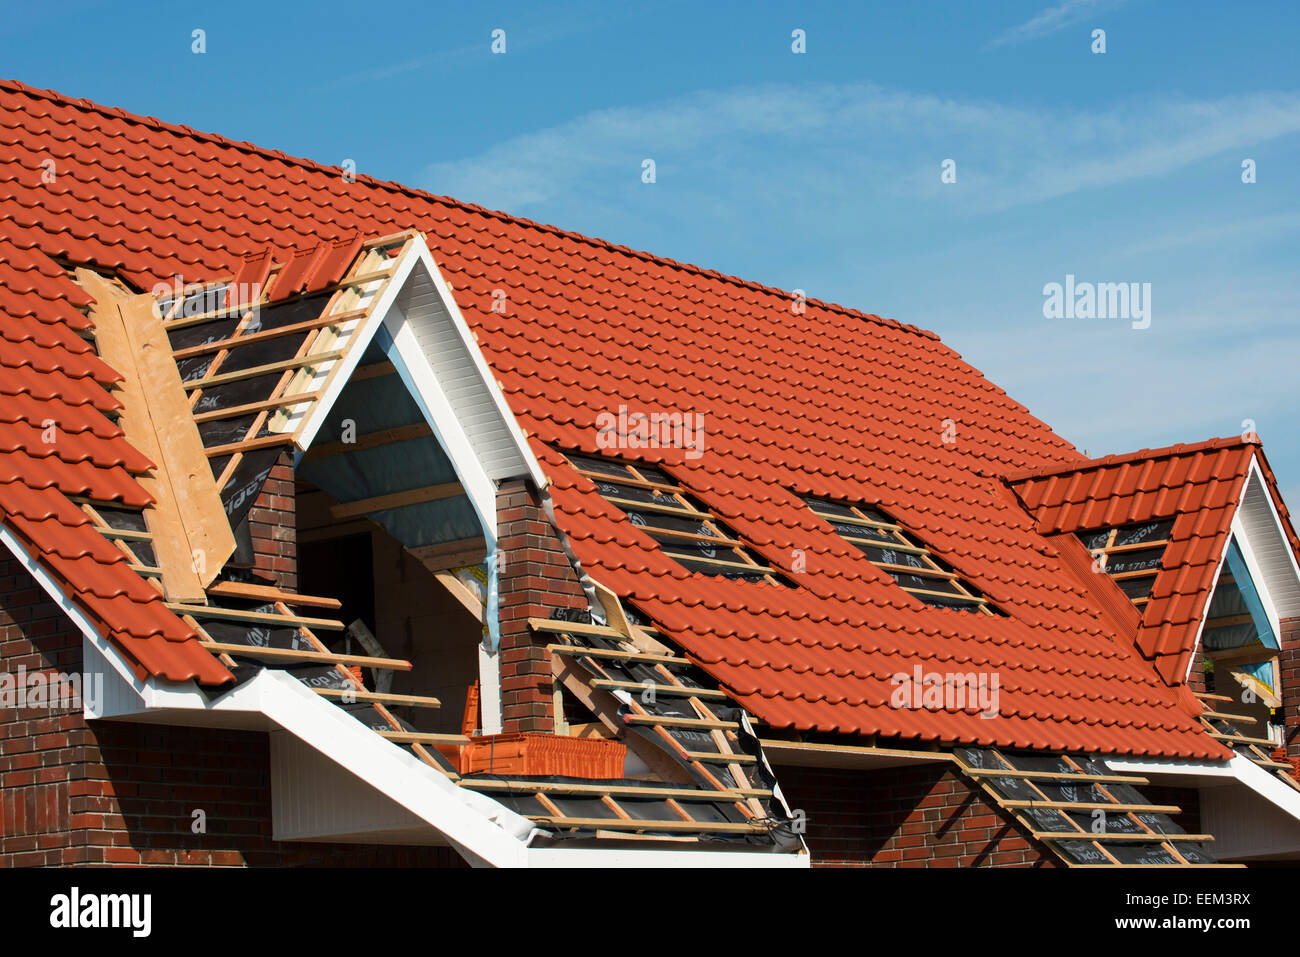 Completion of the roof truss of a newly built house, Aurich, Lower Saxony, Germany - Stock Image